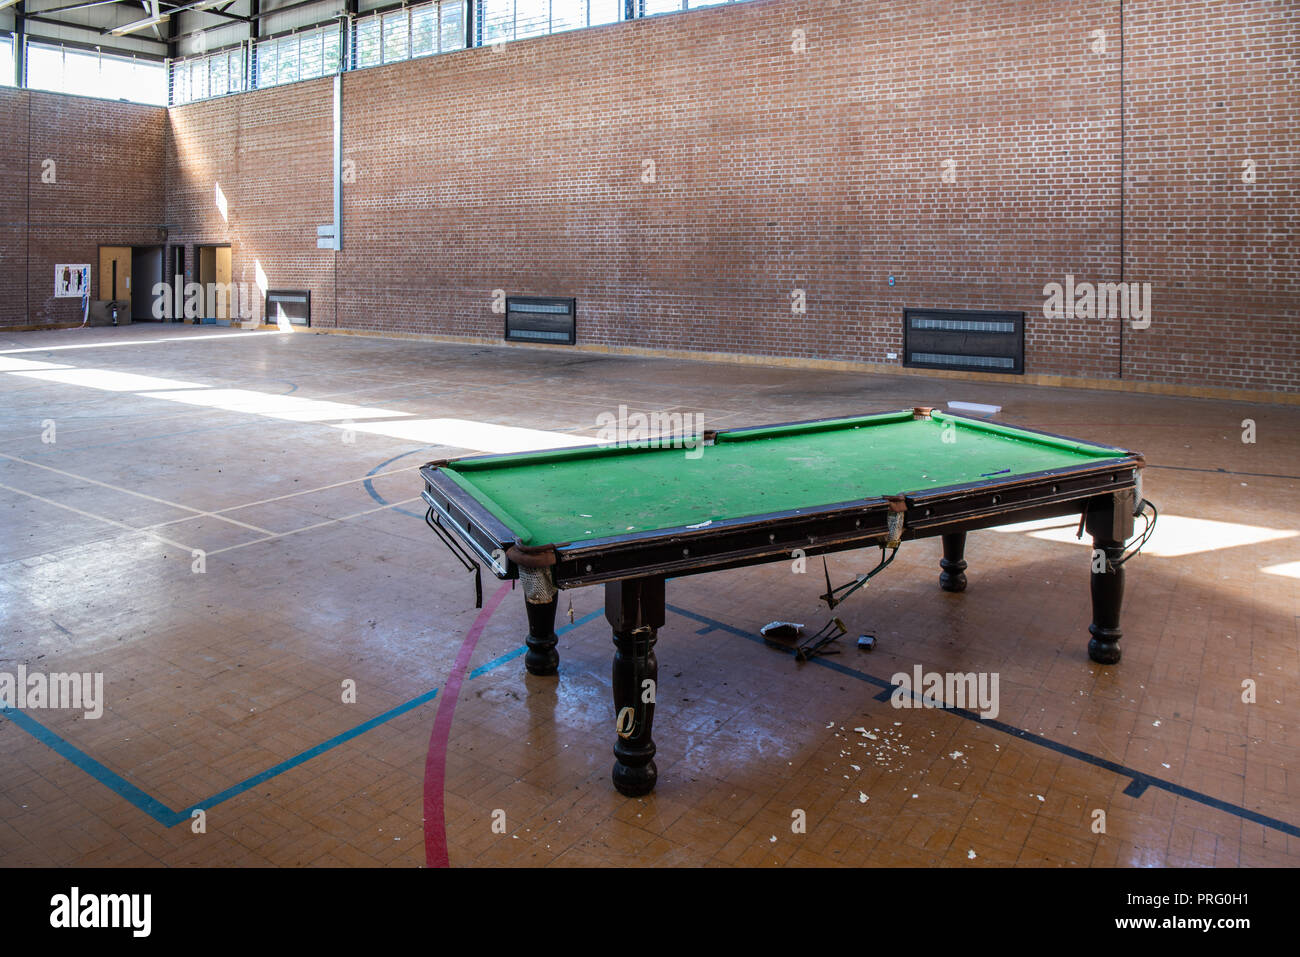 Broken pool snooker table in an abandoned gymnasium. - Stock Image